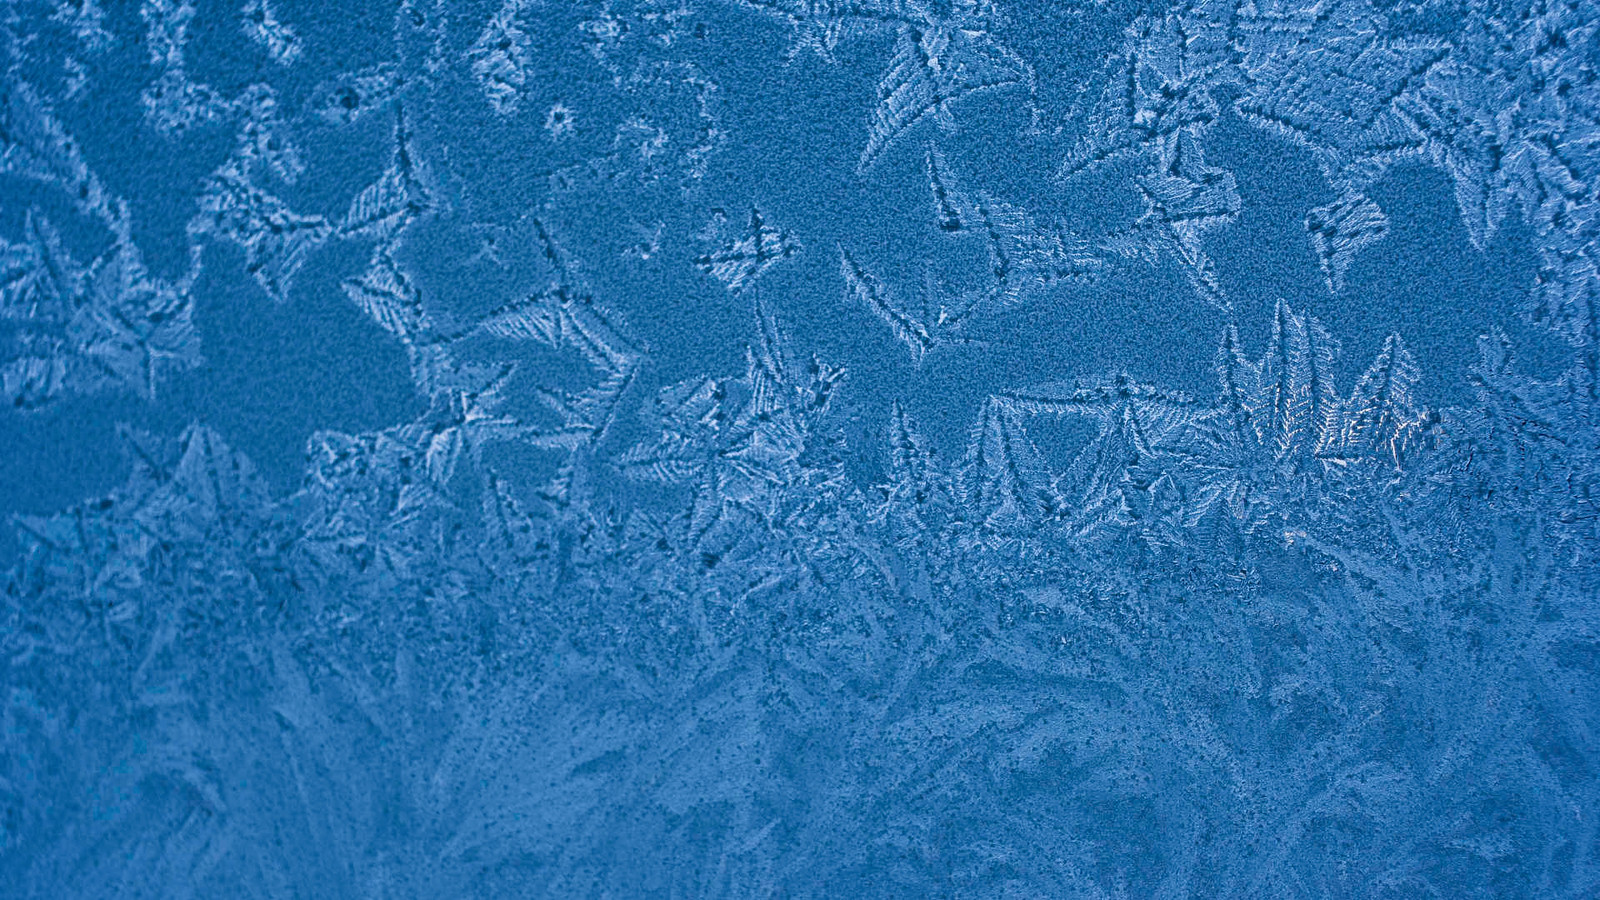 Ice Abstract 8